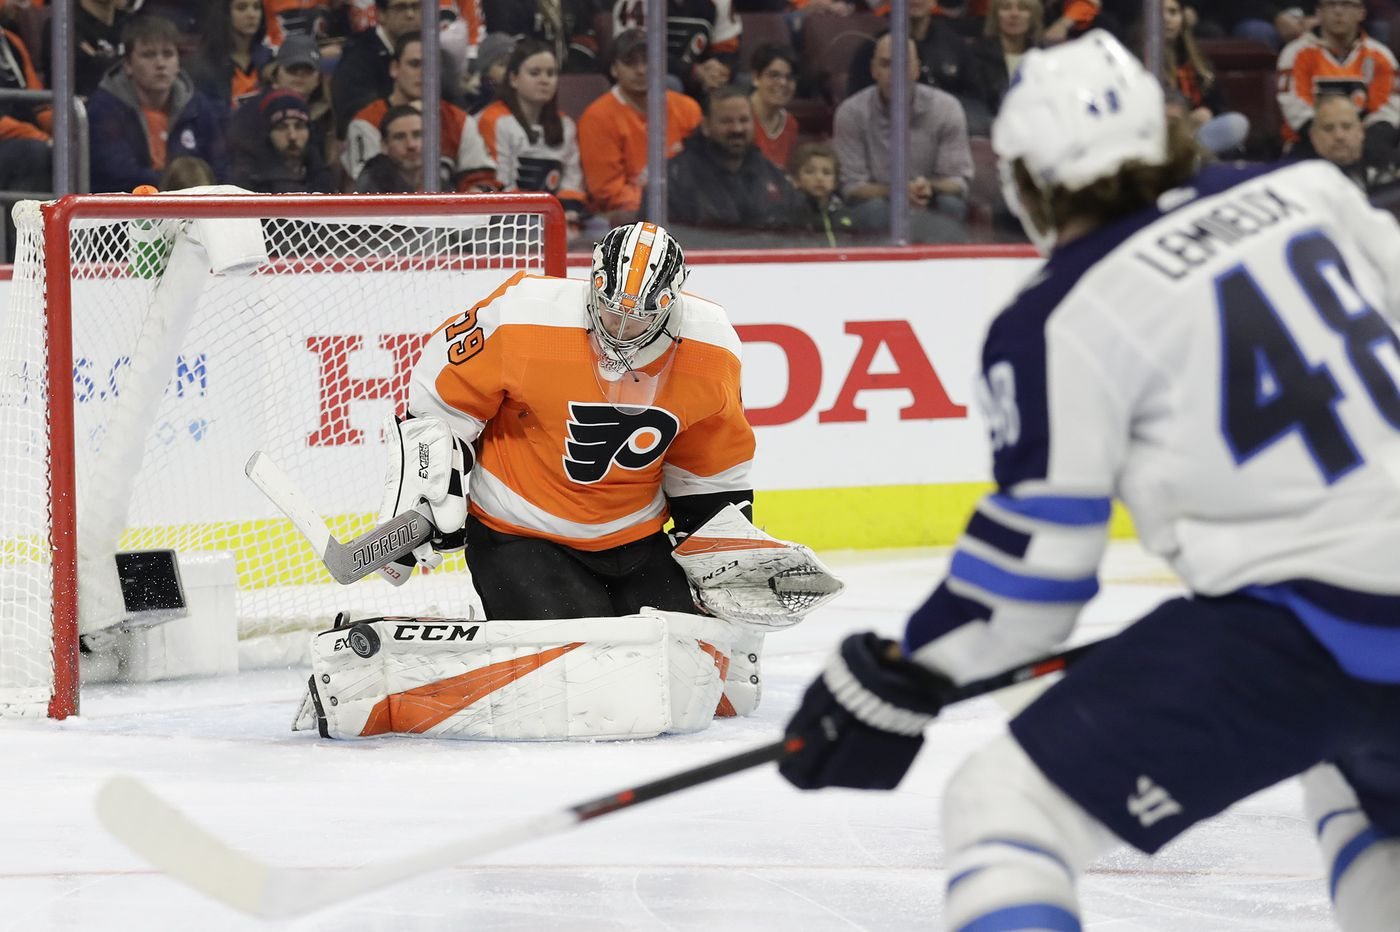 d713bcfca54 Carter Hart, Travis Konecny lead Flyers past Jets for 4th straight win